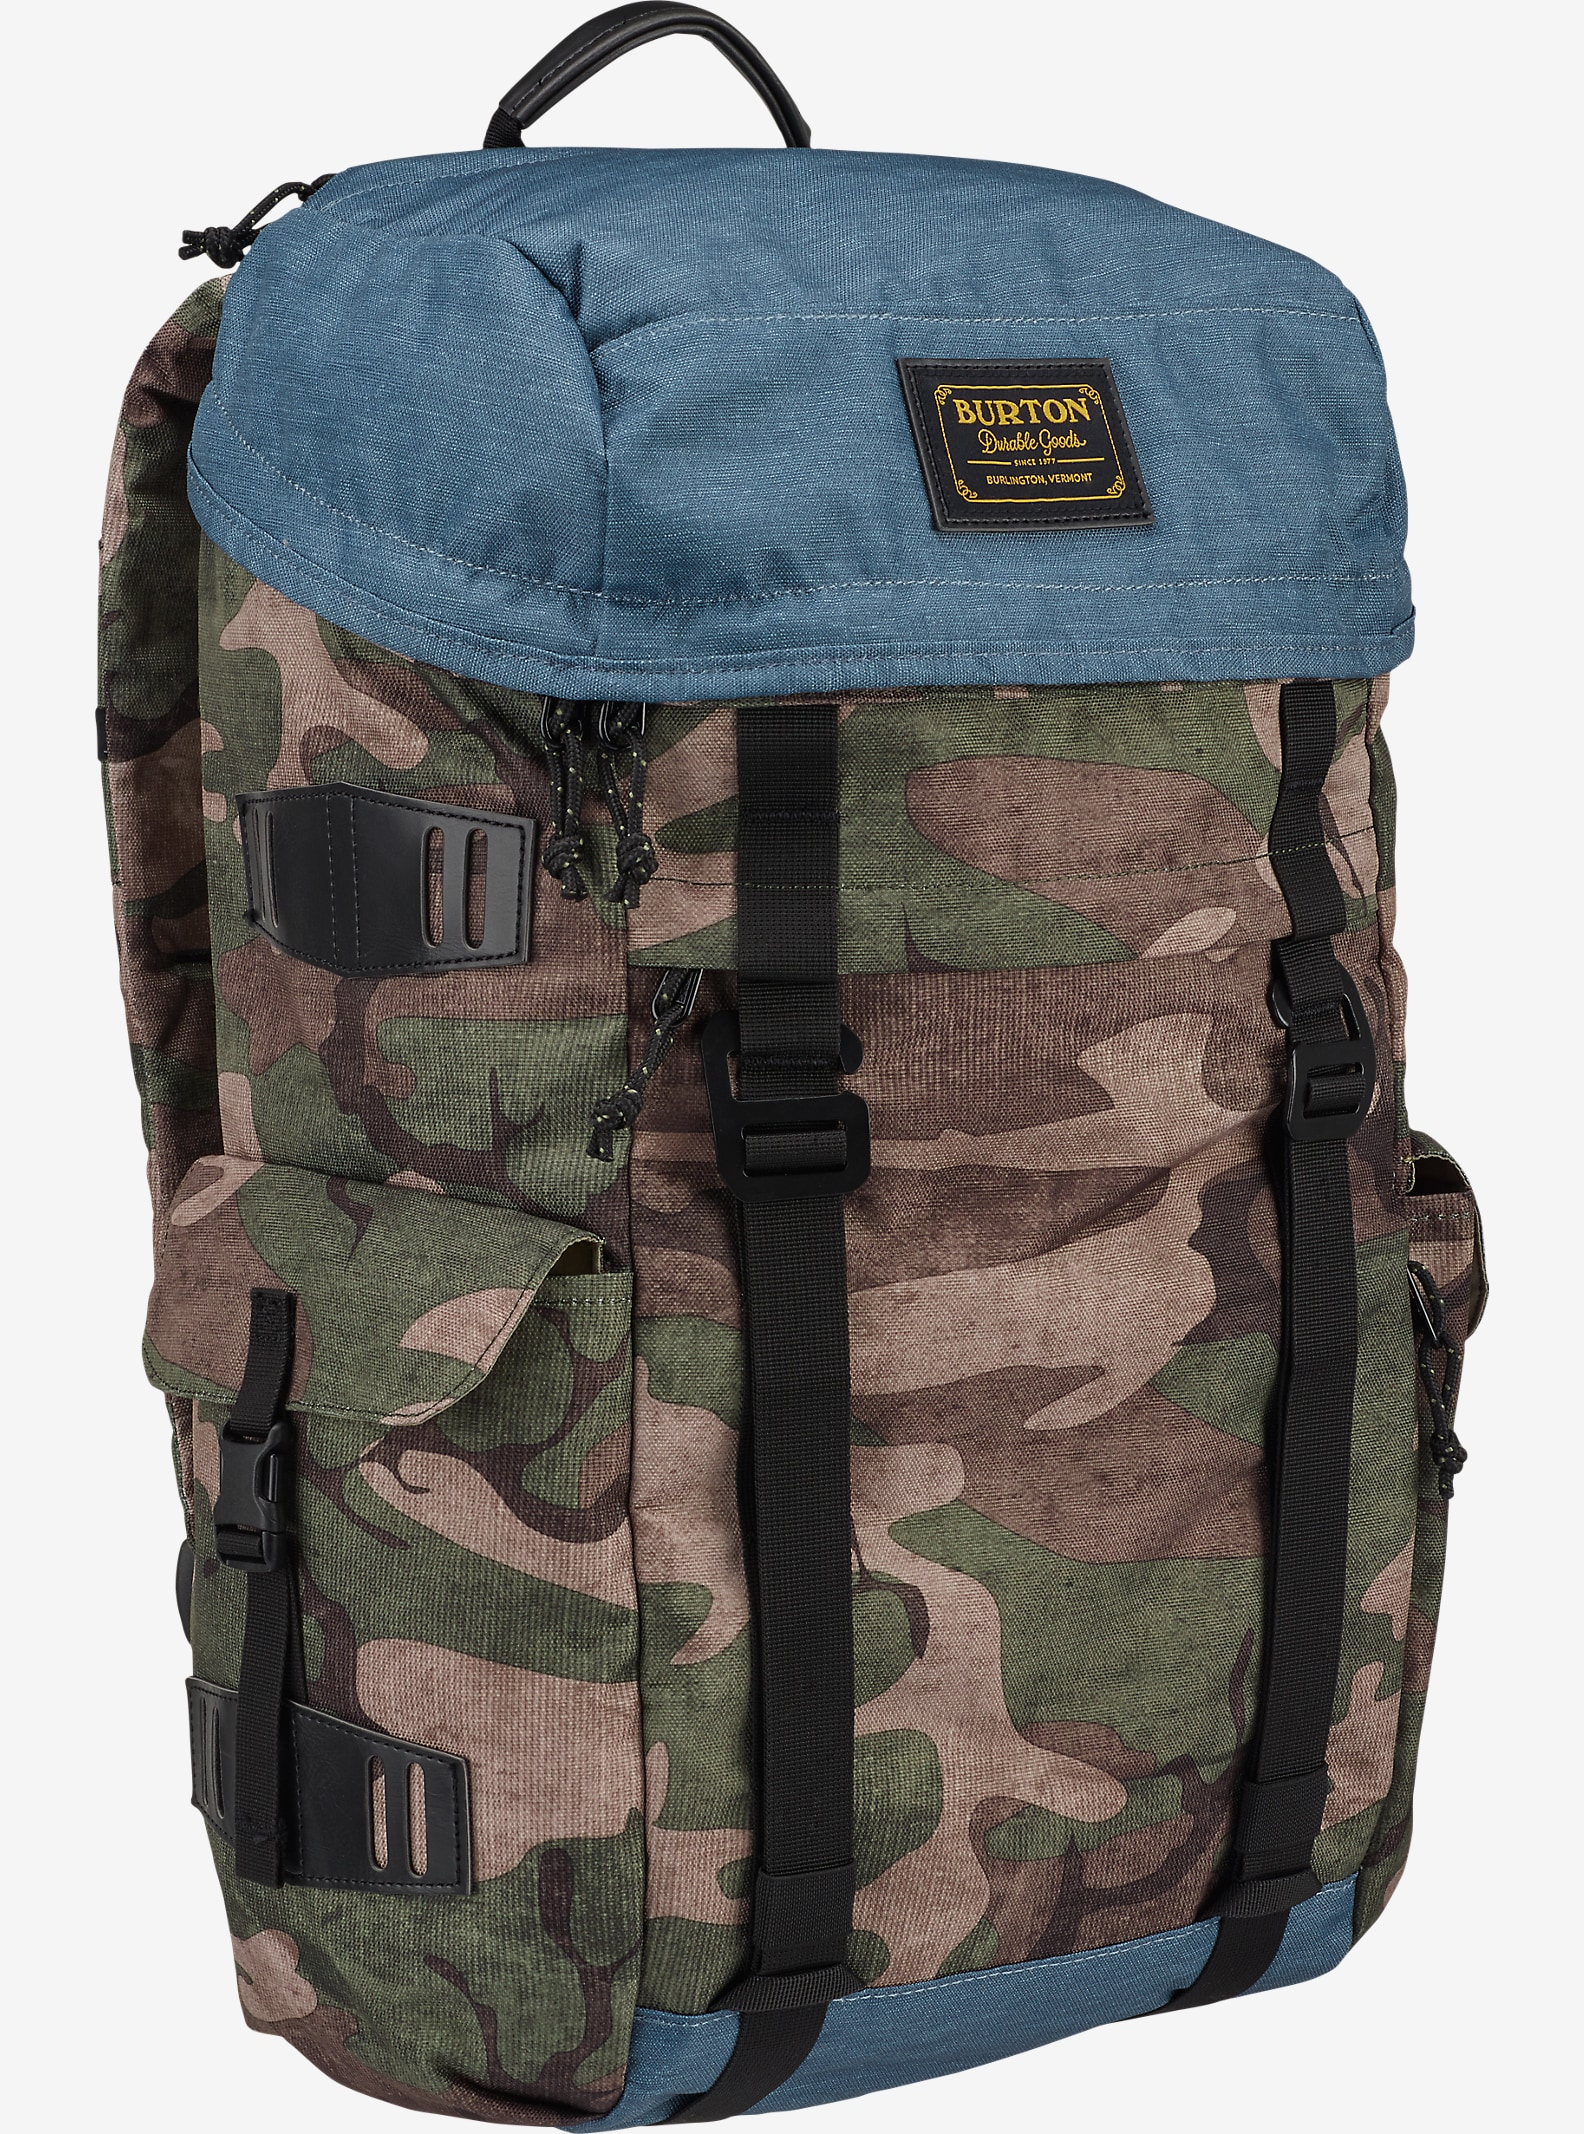 Burton Annex Backpack shown in Bkamo Print